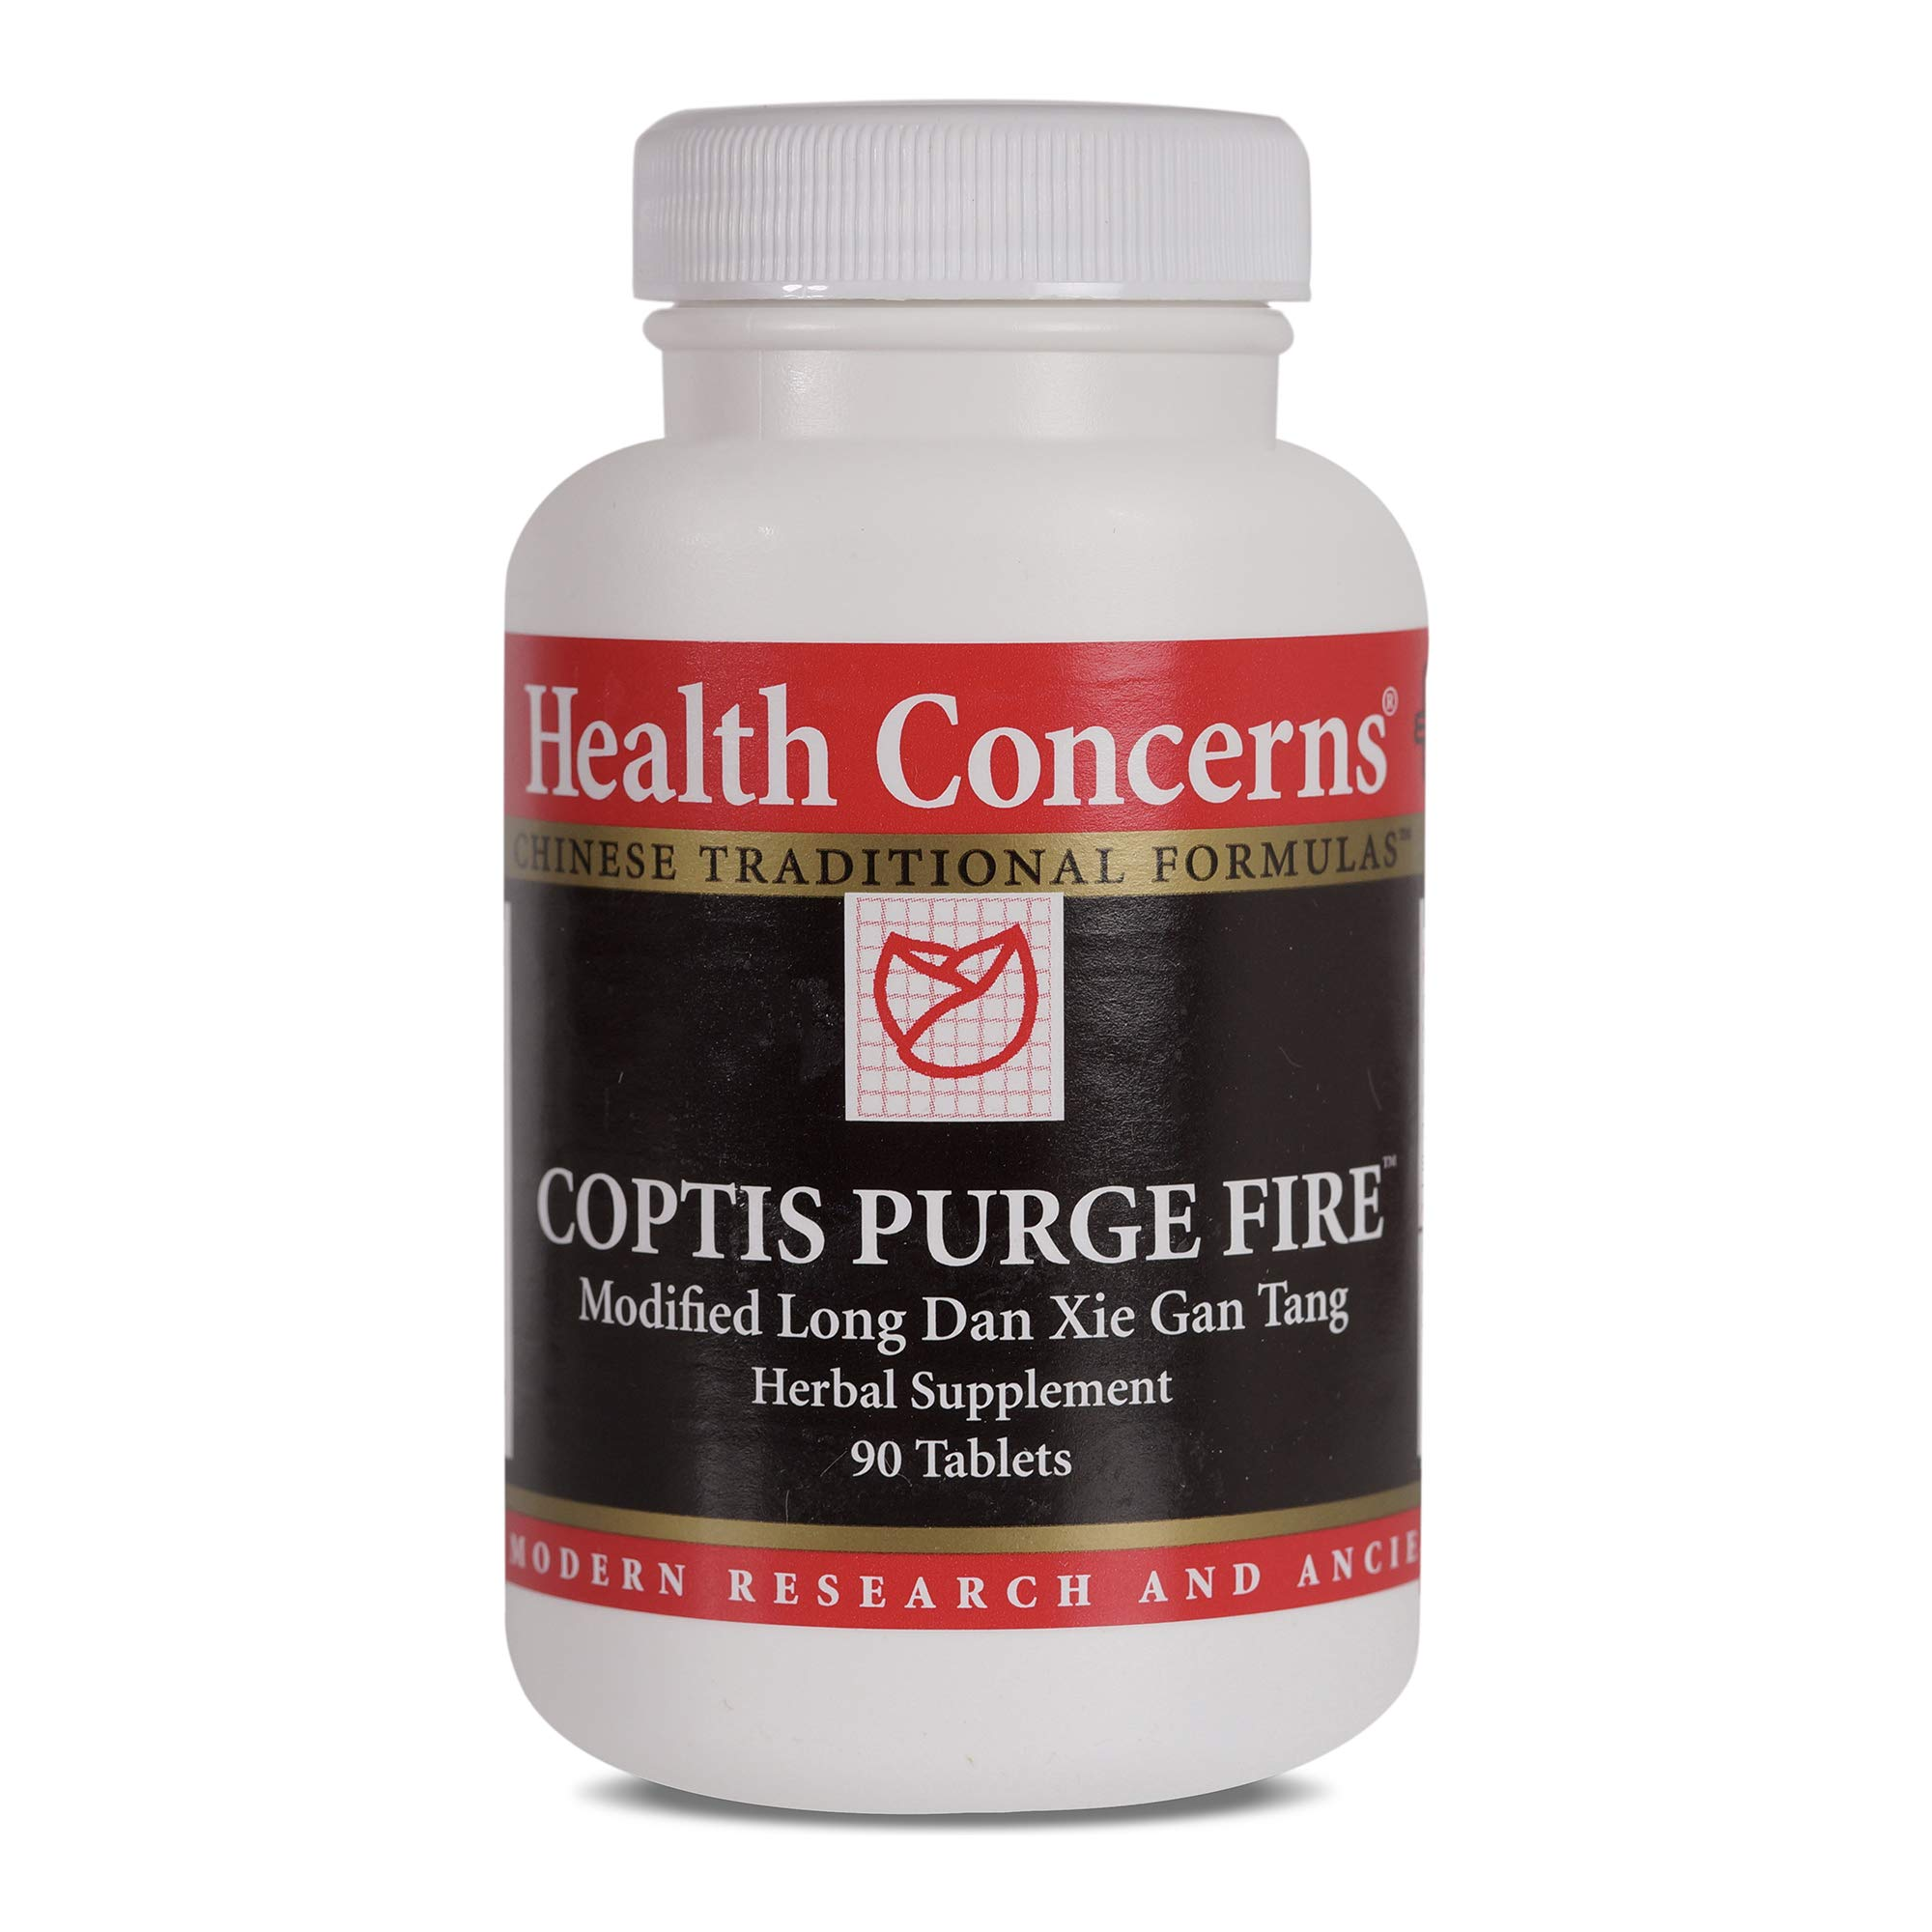 Health Concerns - Coptis Purge Fire Formula - Modified Long Dan Xie Gan Wan Chinese Herbal Supplement - Inflammation and Eye, Ear, and Nasal Infection Relief - with Coptis Rhizome - 90 Tablets per Bottle by Health Concerns